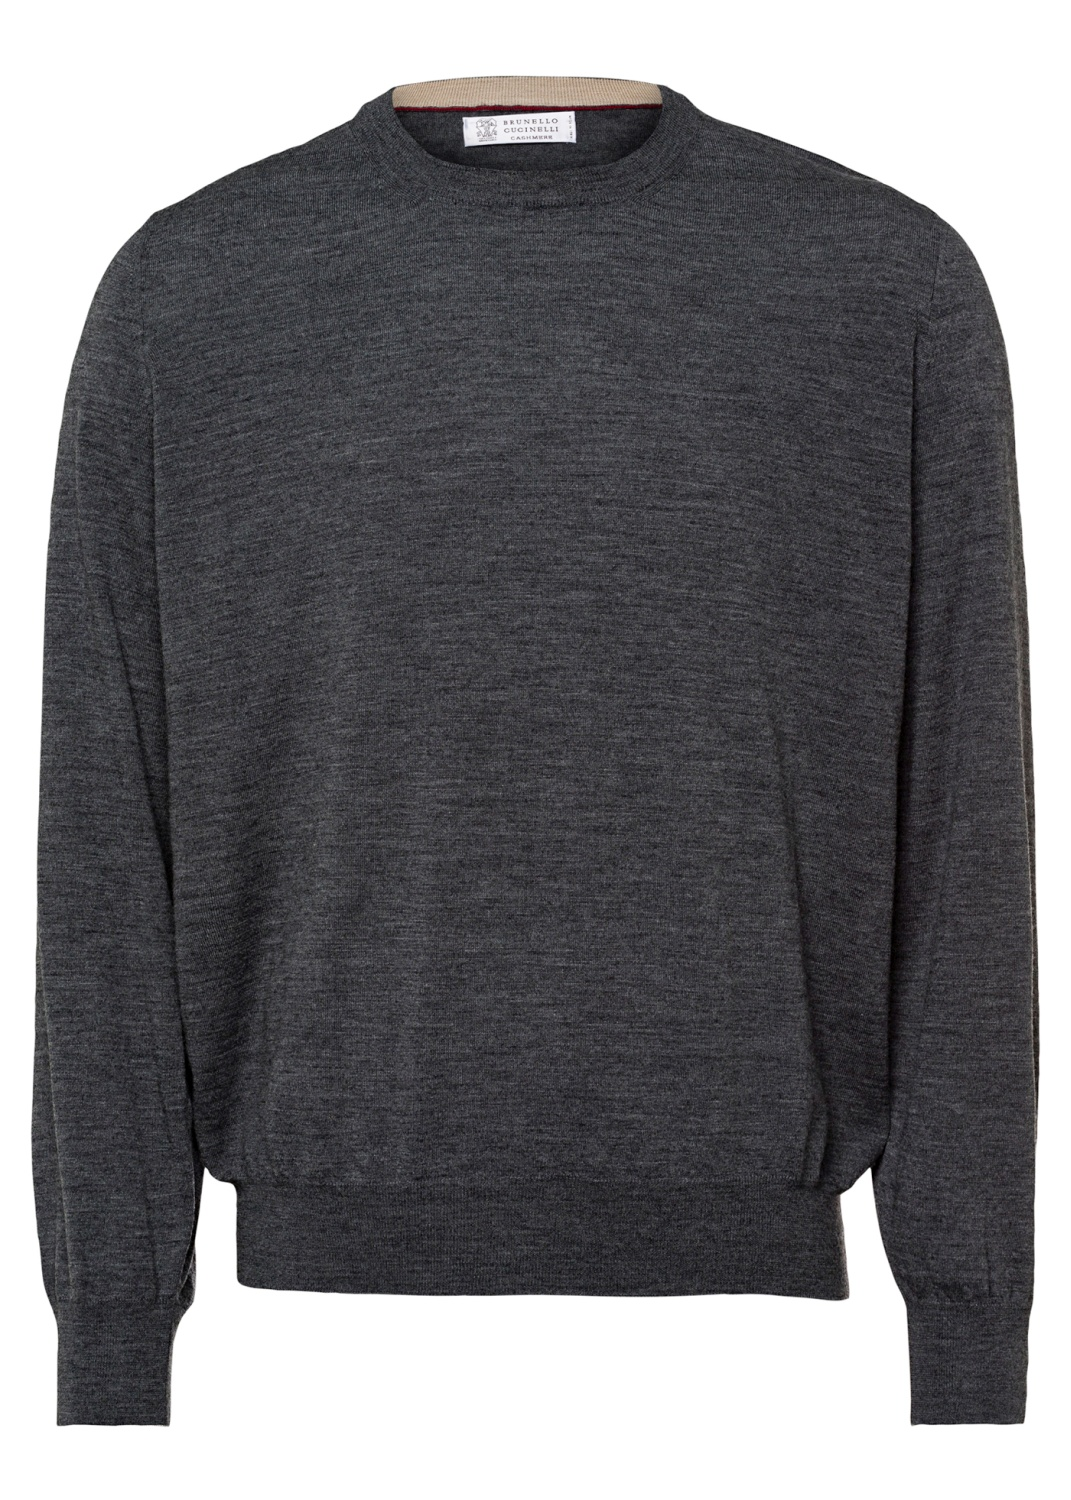 GIROCOLLO M/L - Pullover image number 0